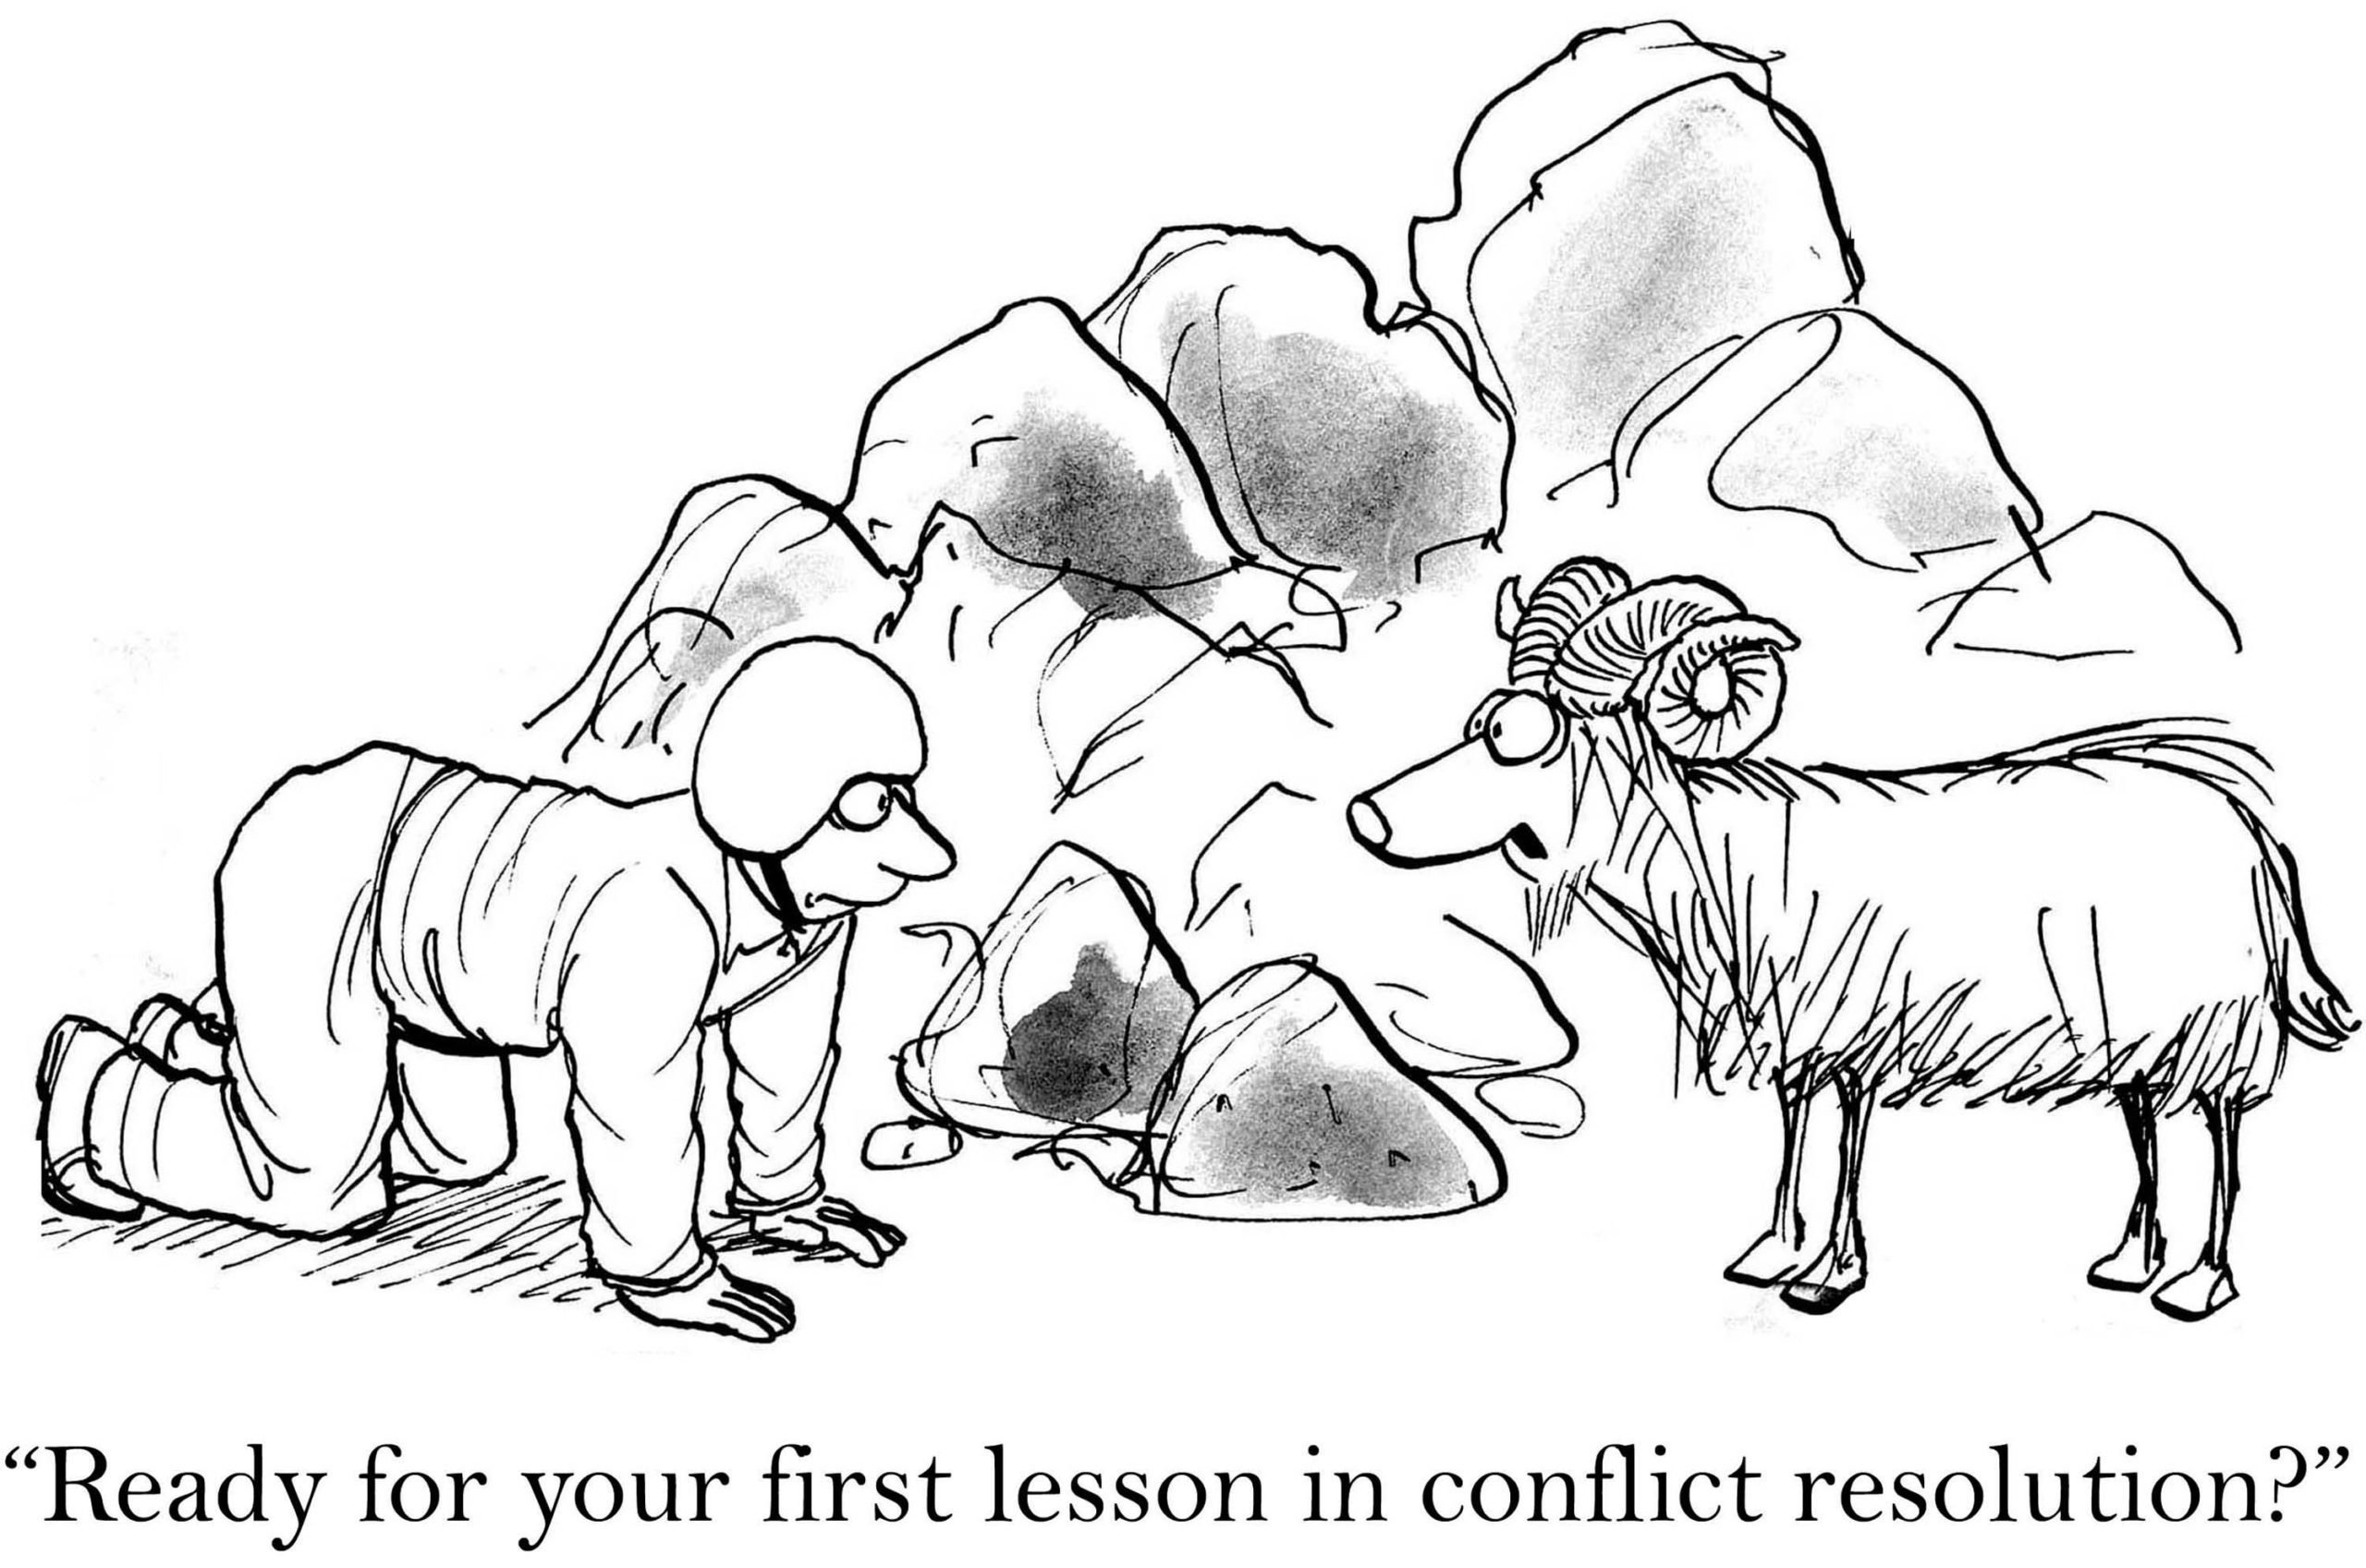 Lesson in Conflict Resolution